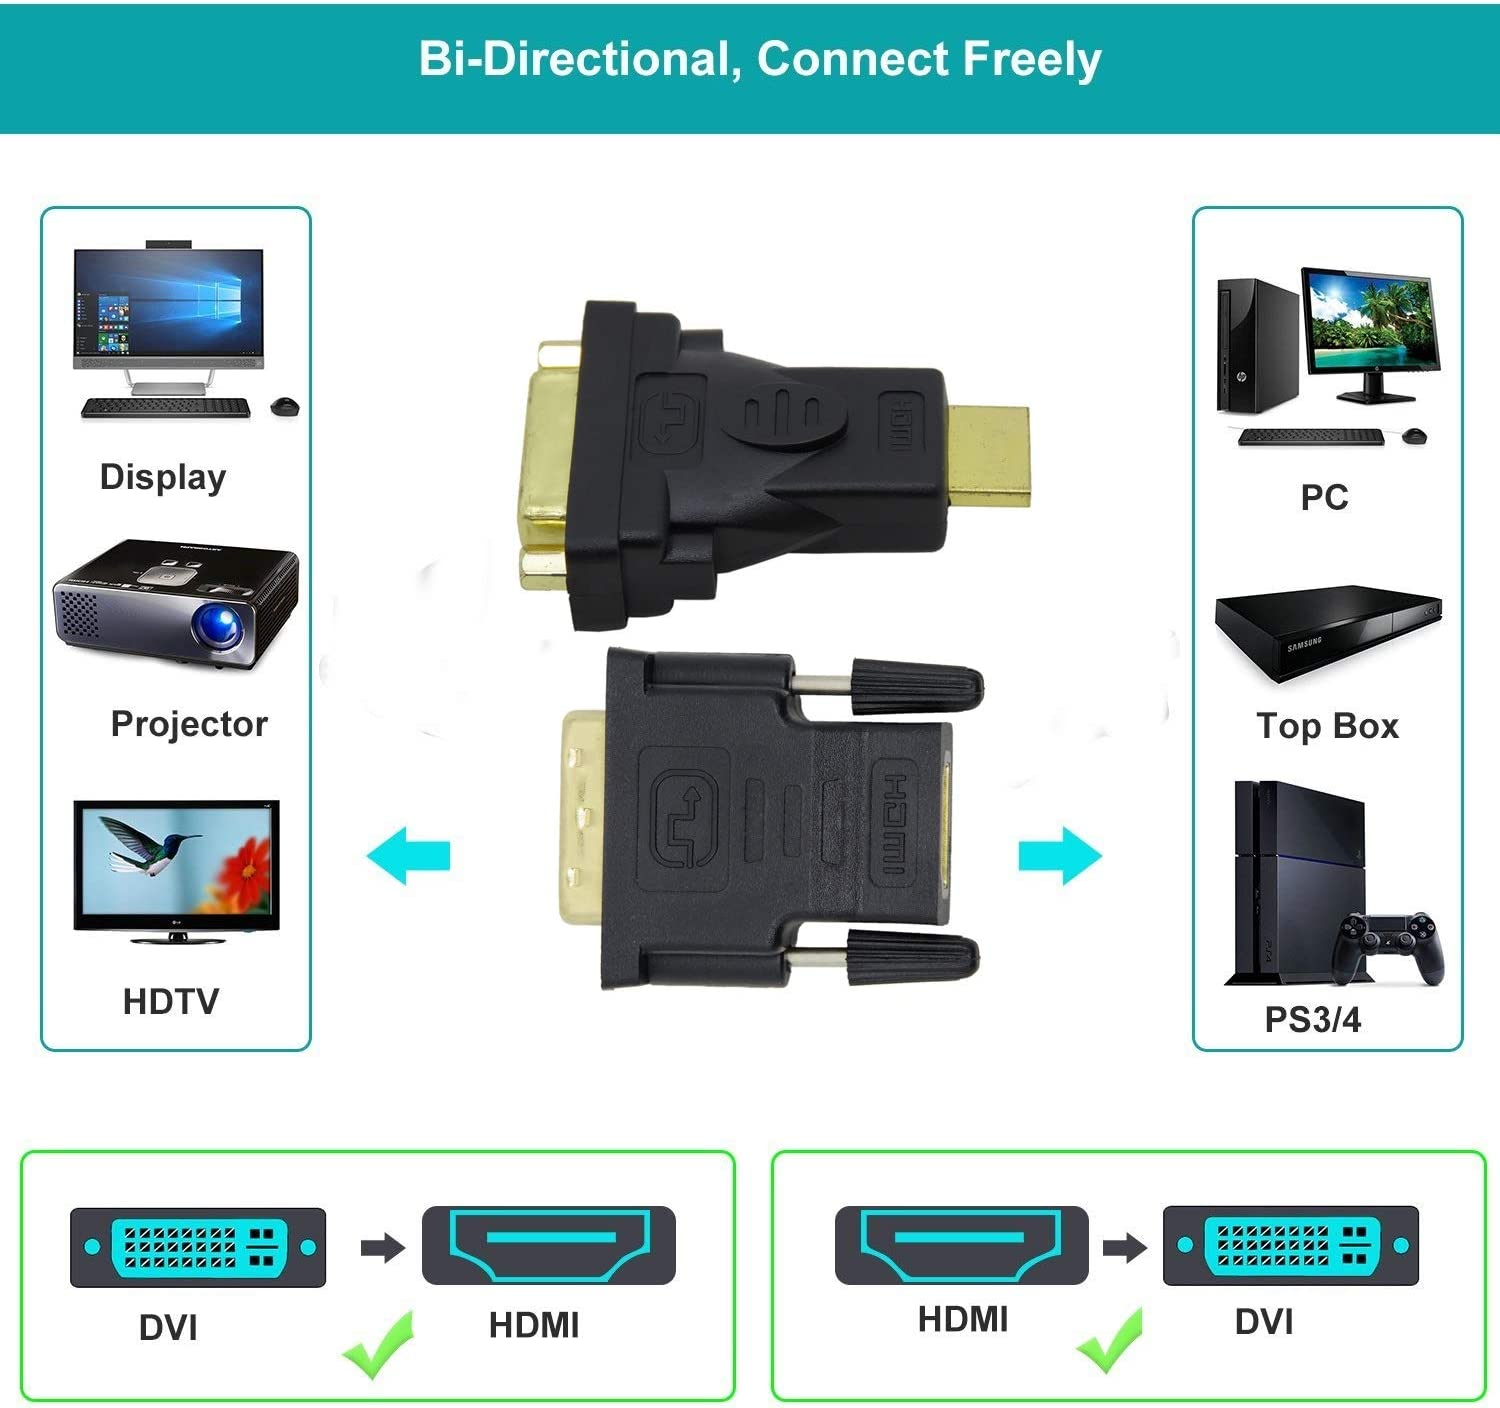 Bi-Direction HDMI to DVI HDMI Female to DVI Male+HDMI Male to DVI Female Converter for Computers Laptops 2 Pack CABLEDECONN HDMI to DVI Adapter